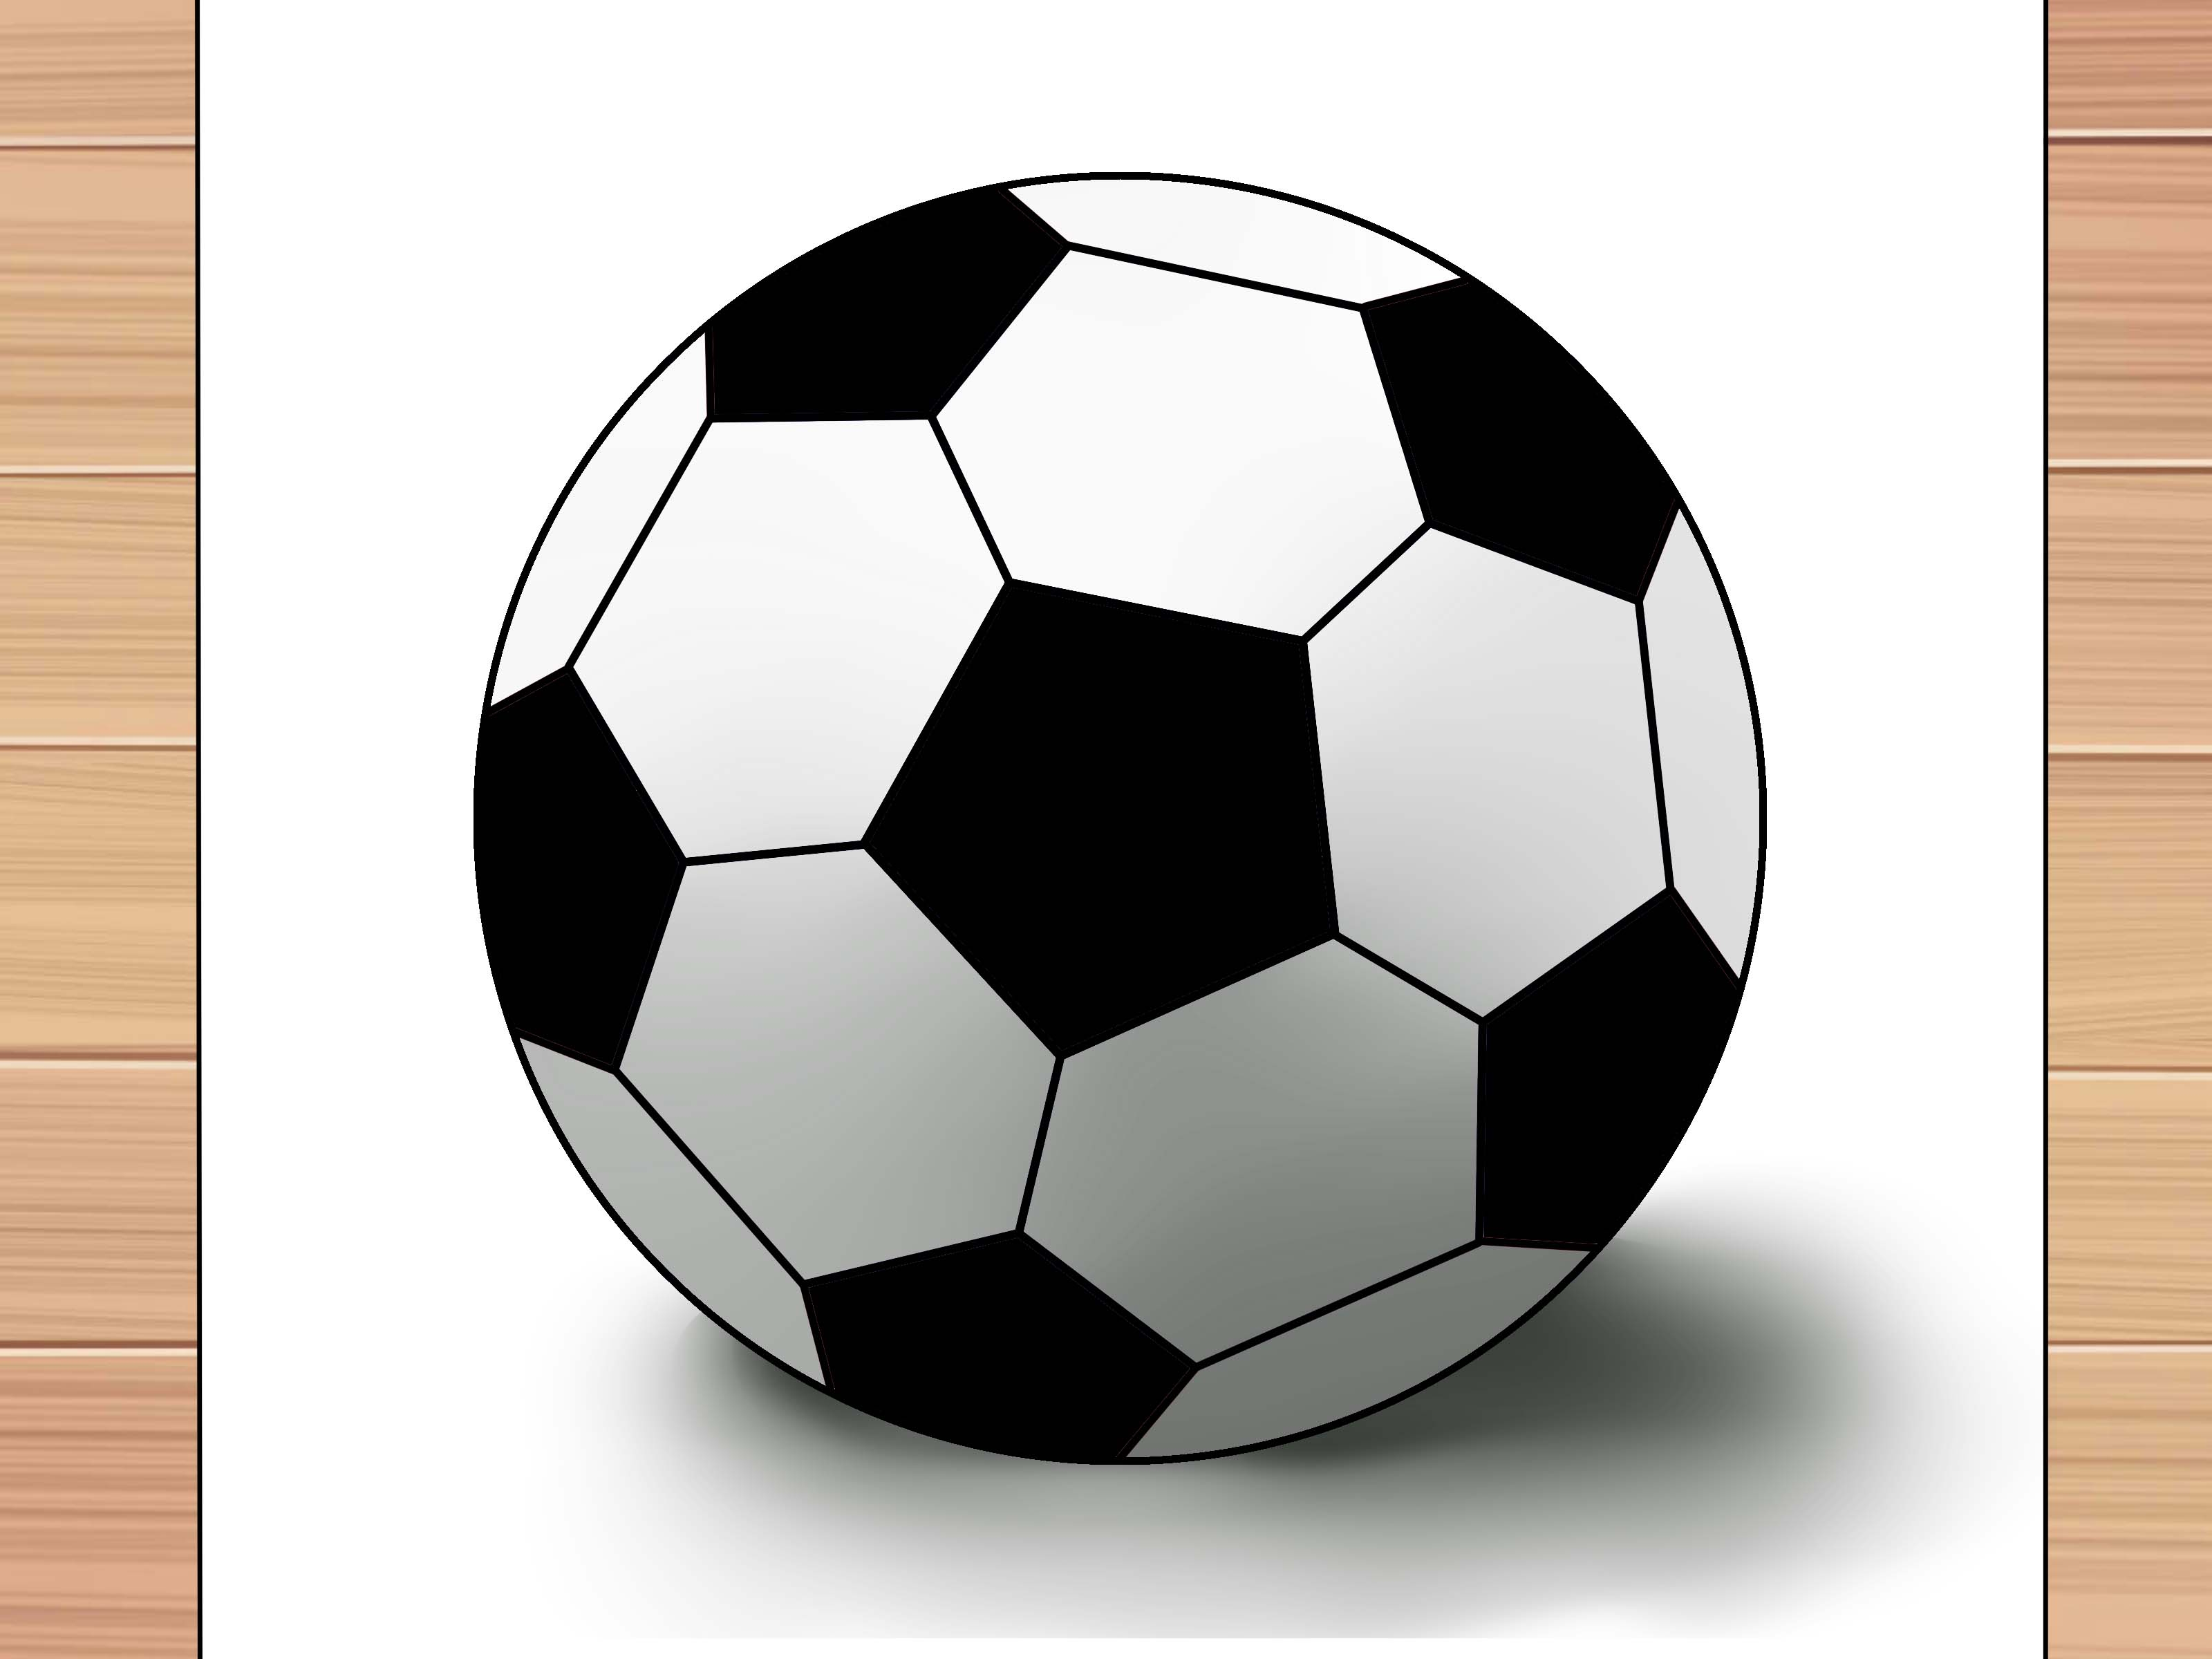 3200x2400 Soccer Ball Drawings How To Draw A Soccer Ball Drawing Tutorial